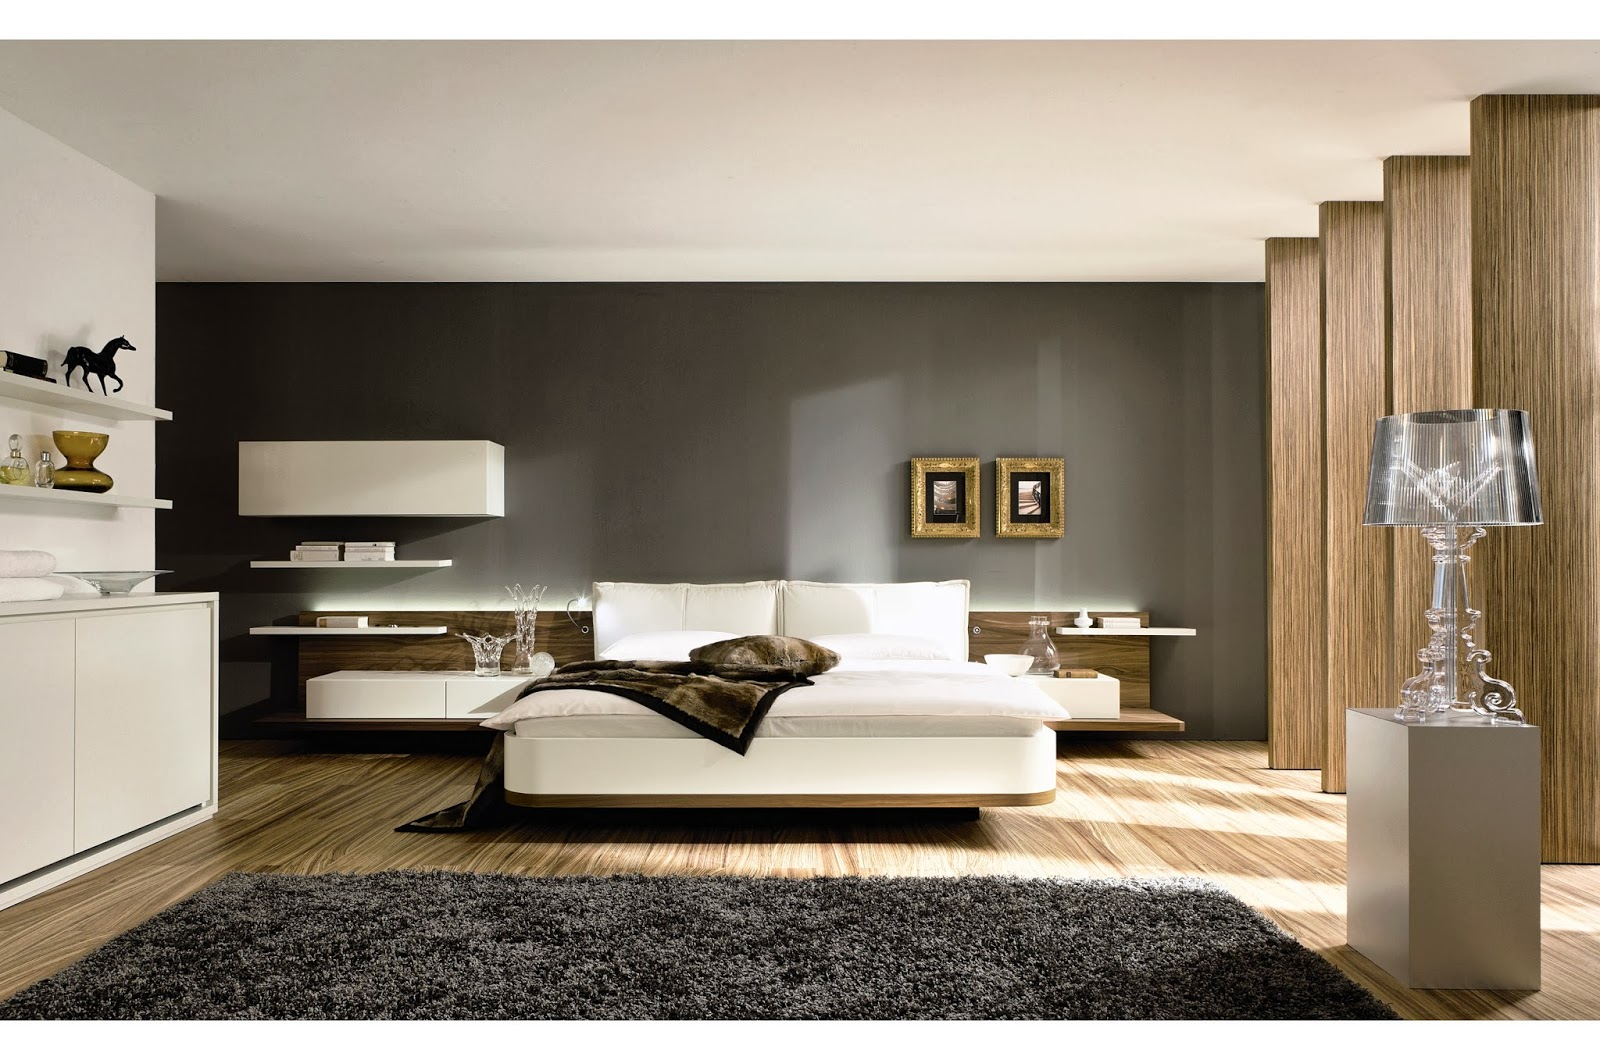 Modern bedroom interior design - Interior bedroom design ...